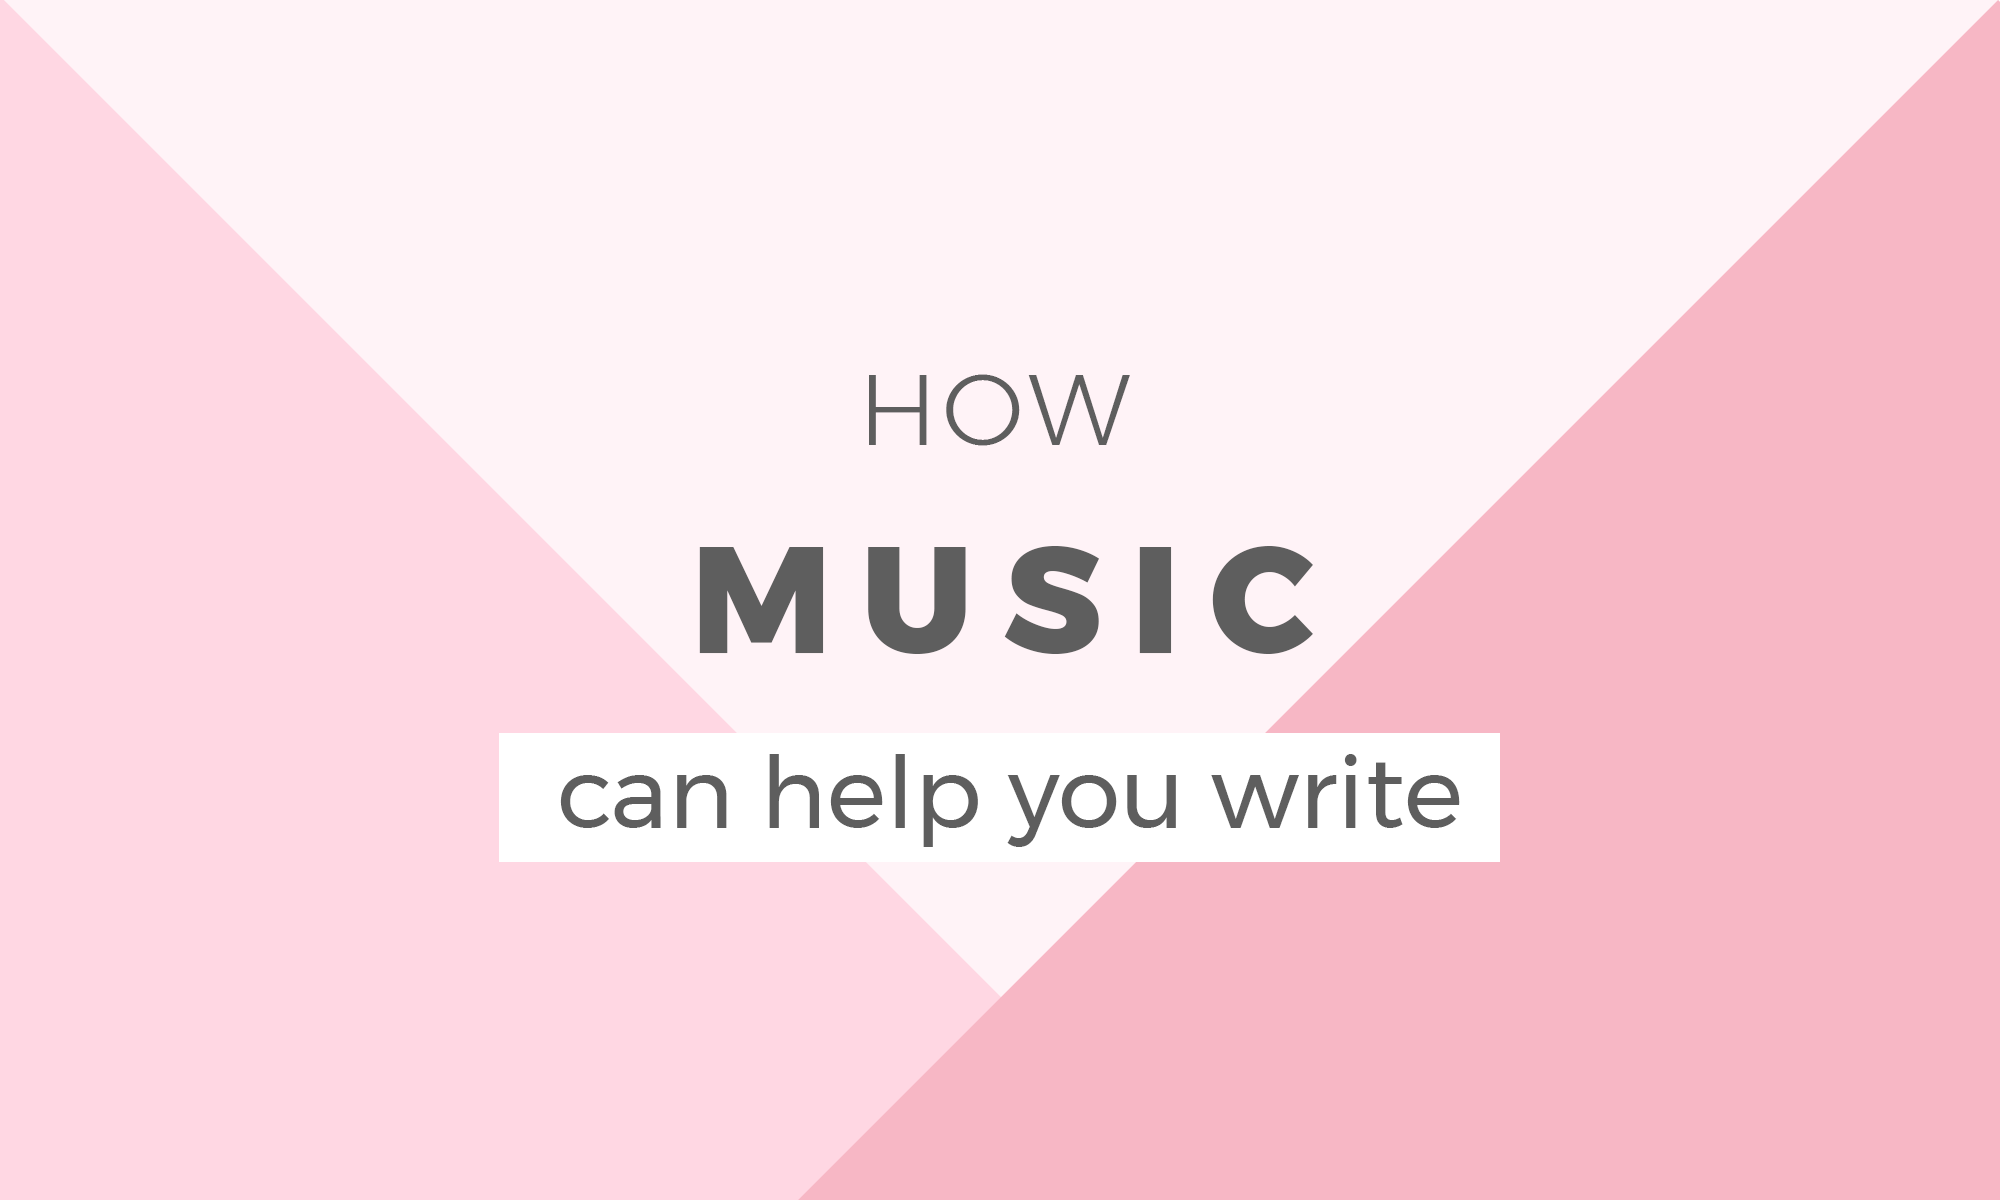 How music can help you write